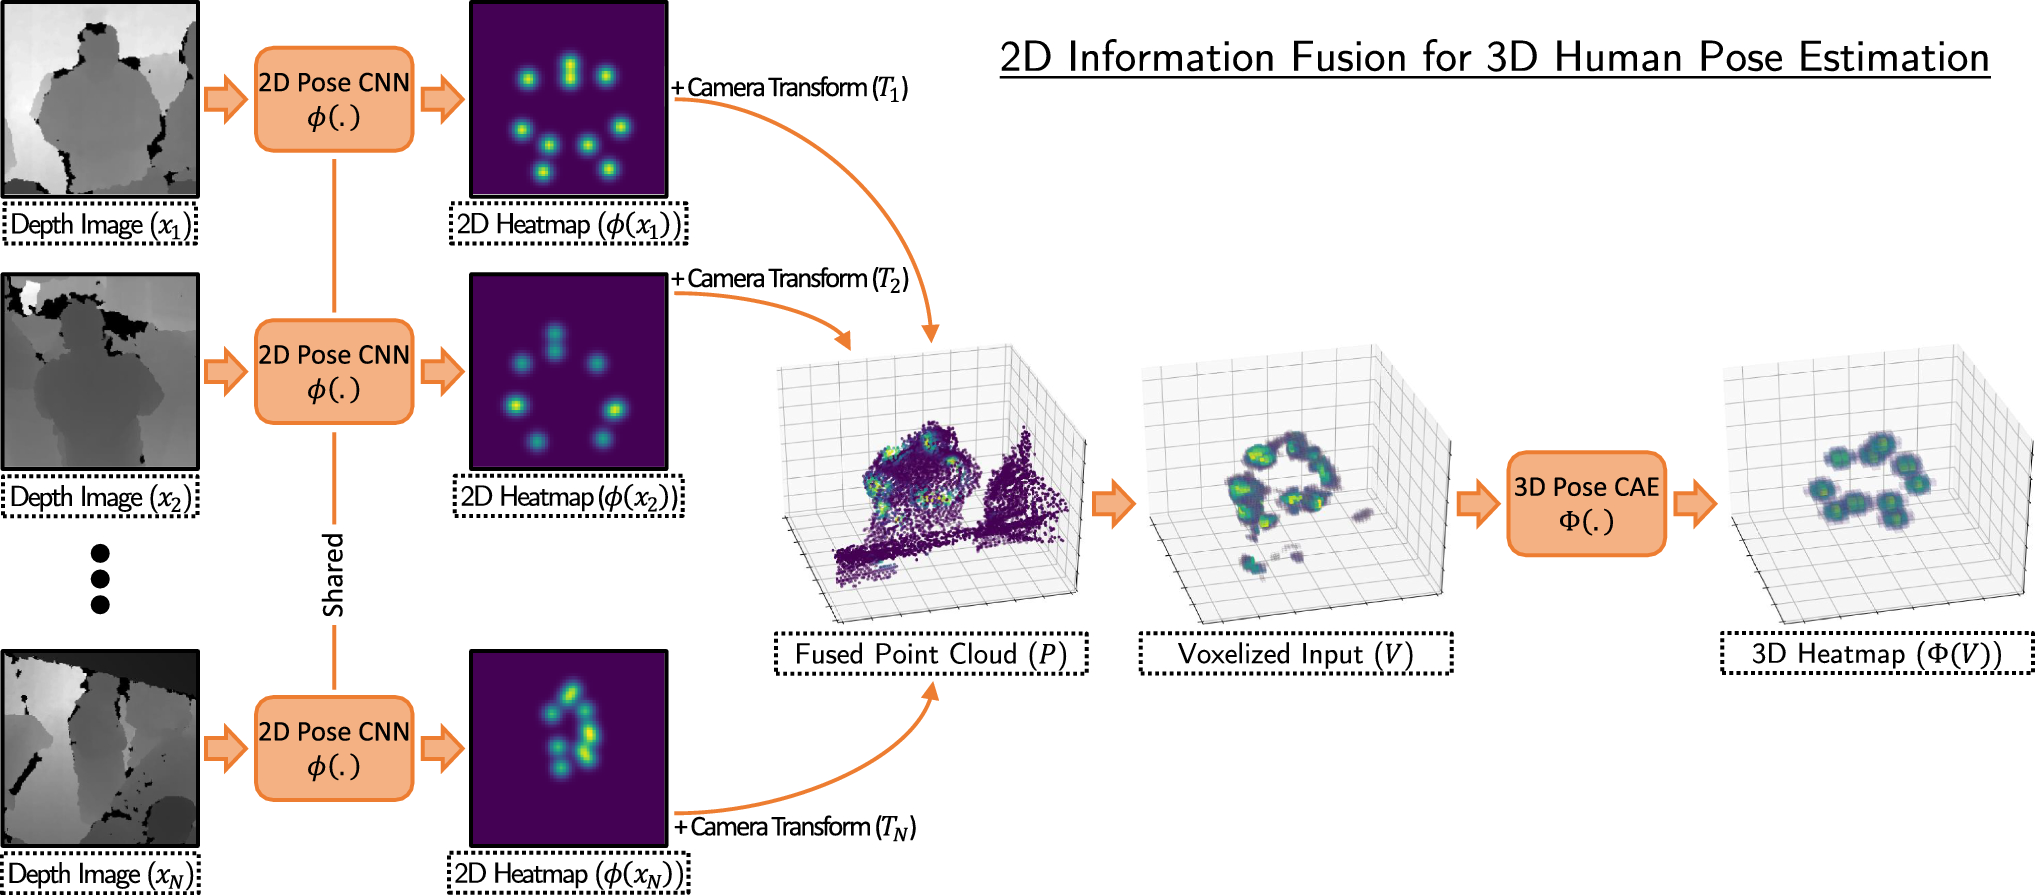 Fusing information from multiple 2D depth cameras for 3D